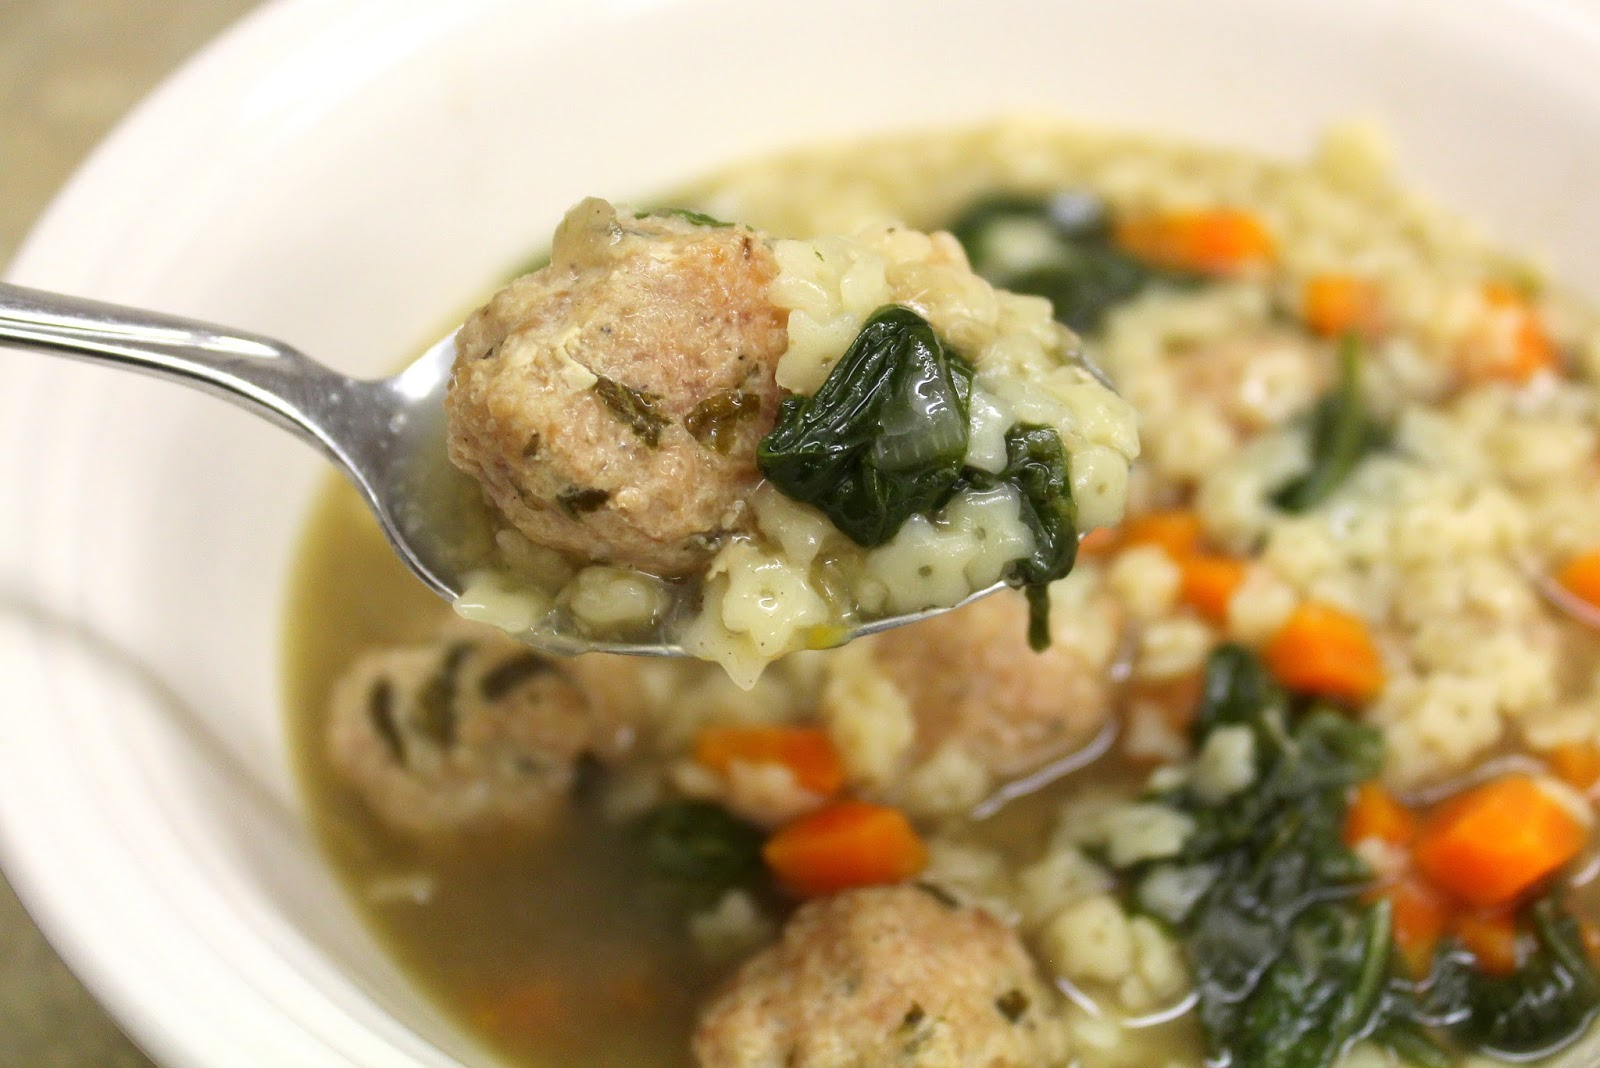 ... Girl Recipes: Crock Pot Italian Wedding Soup with Turkey Meatballs